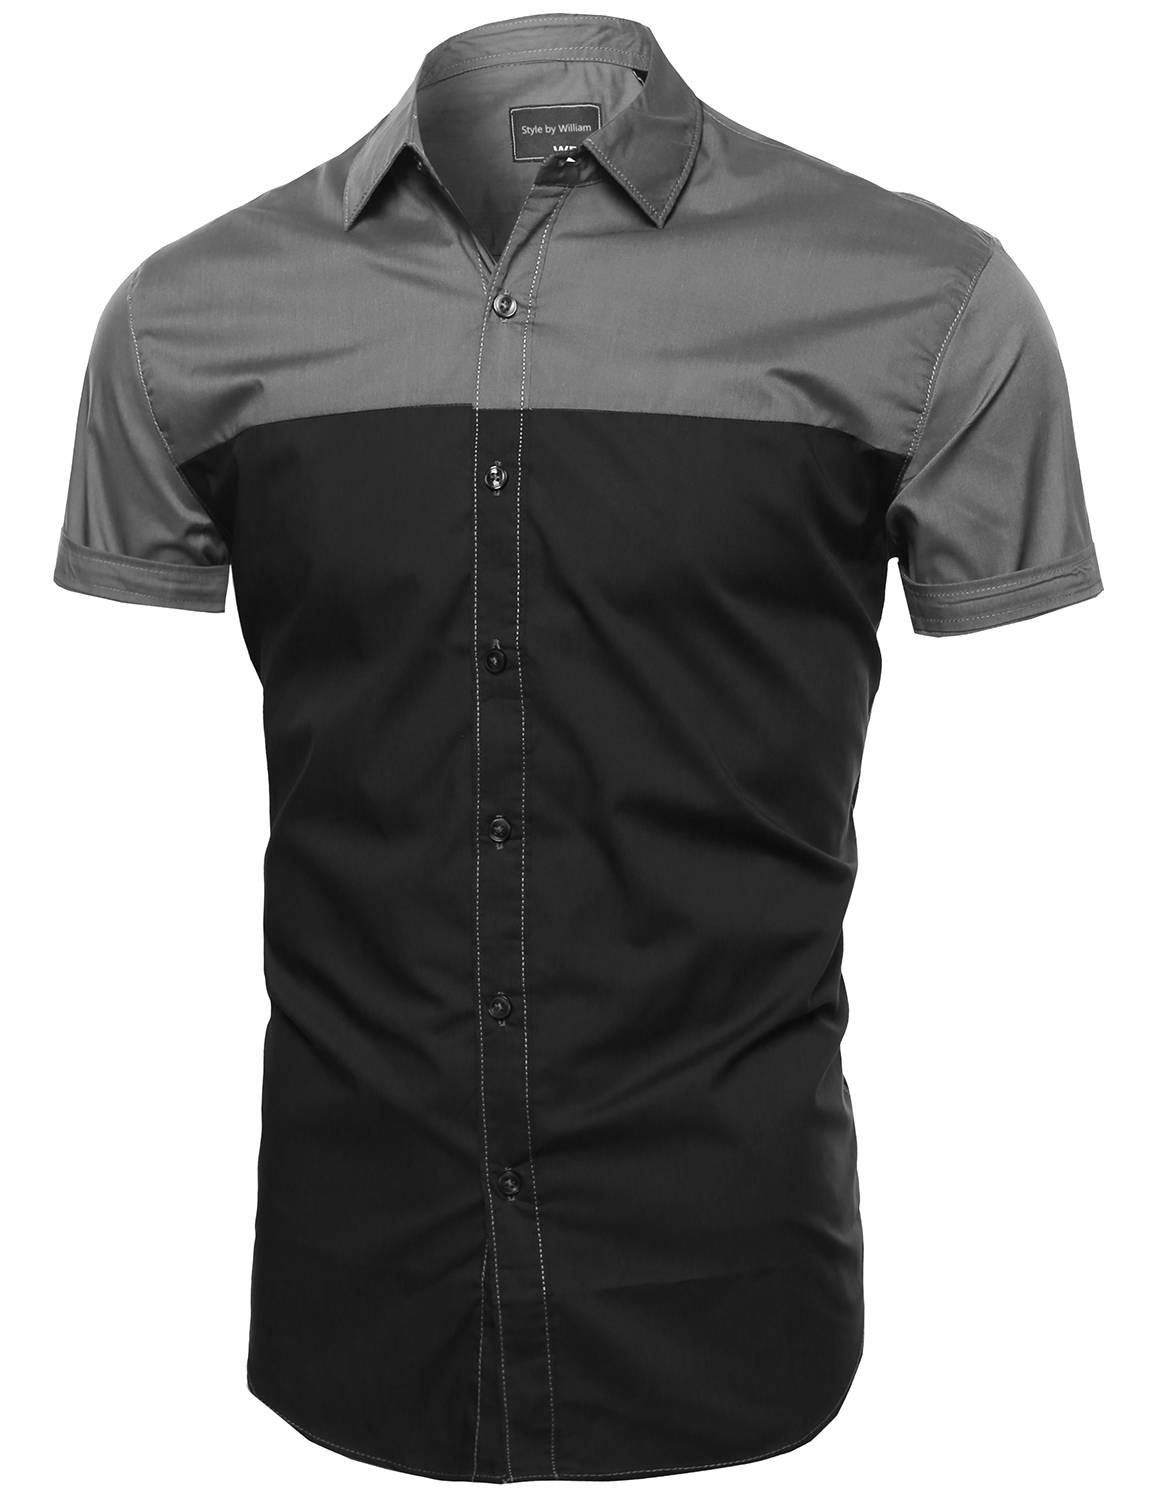 Fashionoutfit men lightweight casual color block button for Mens casual short sleeve button down shirts